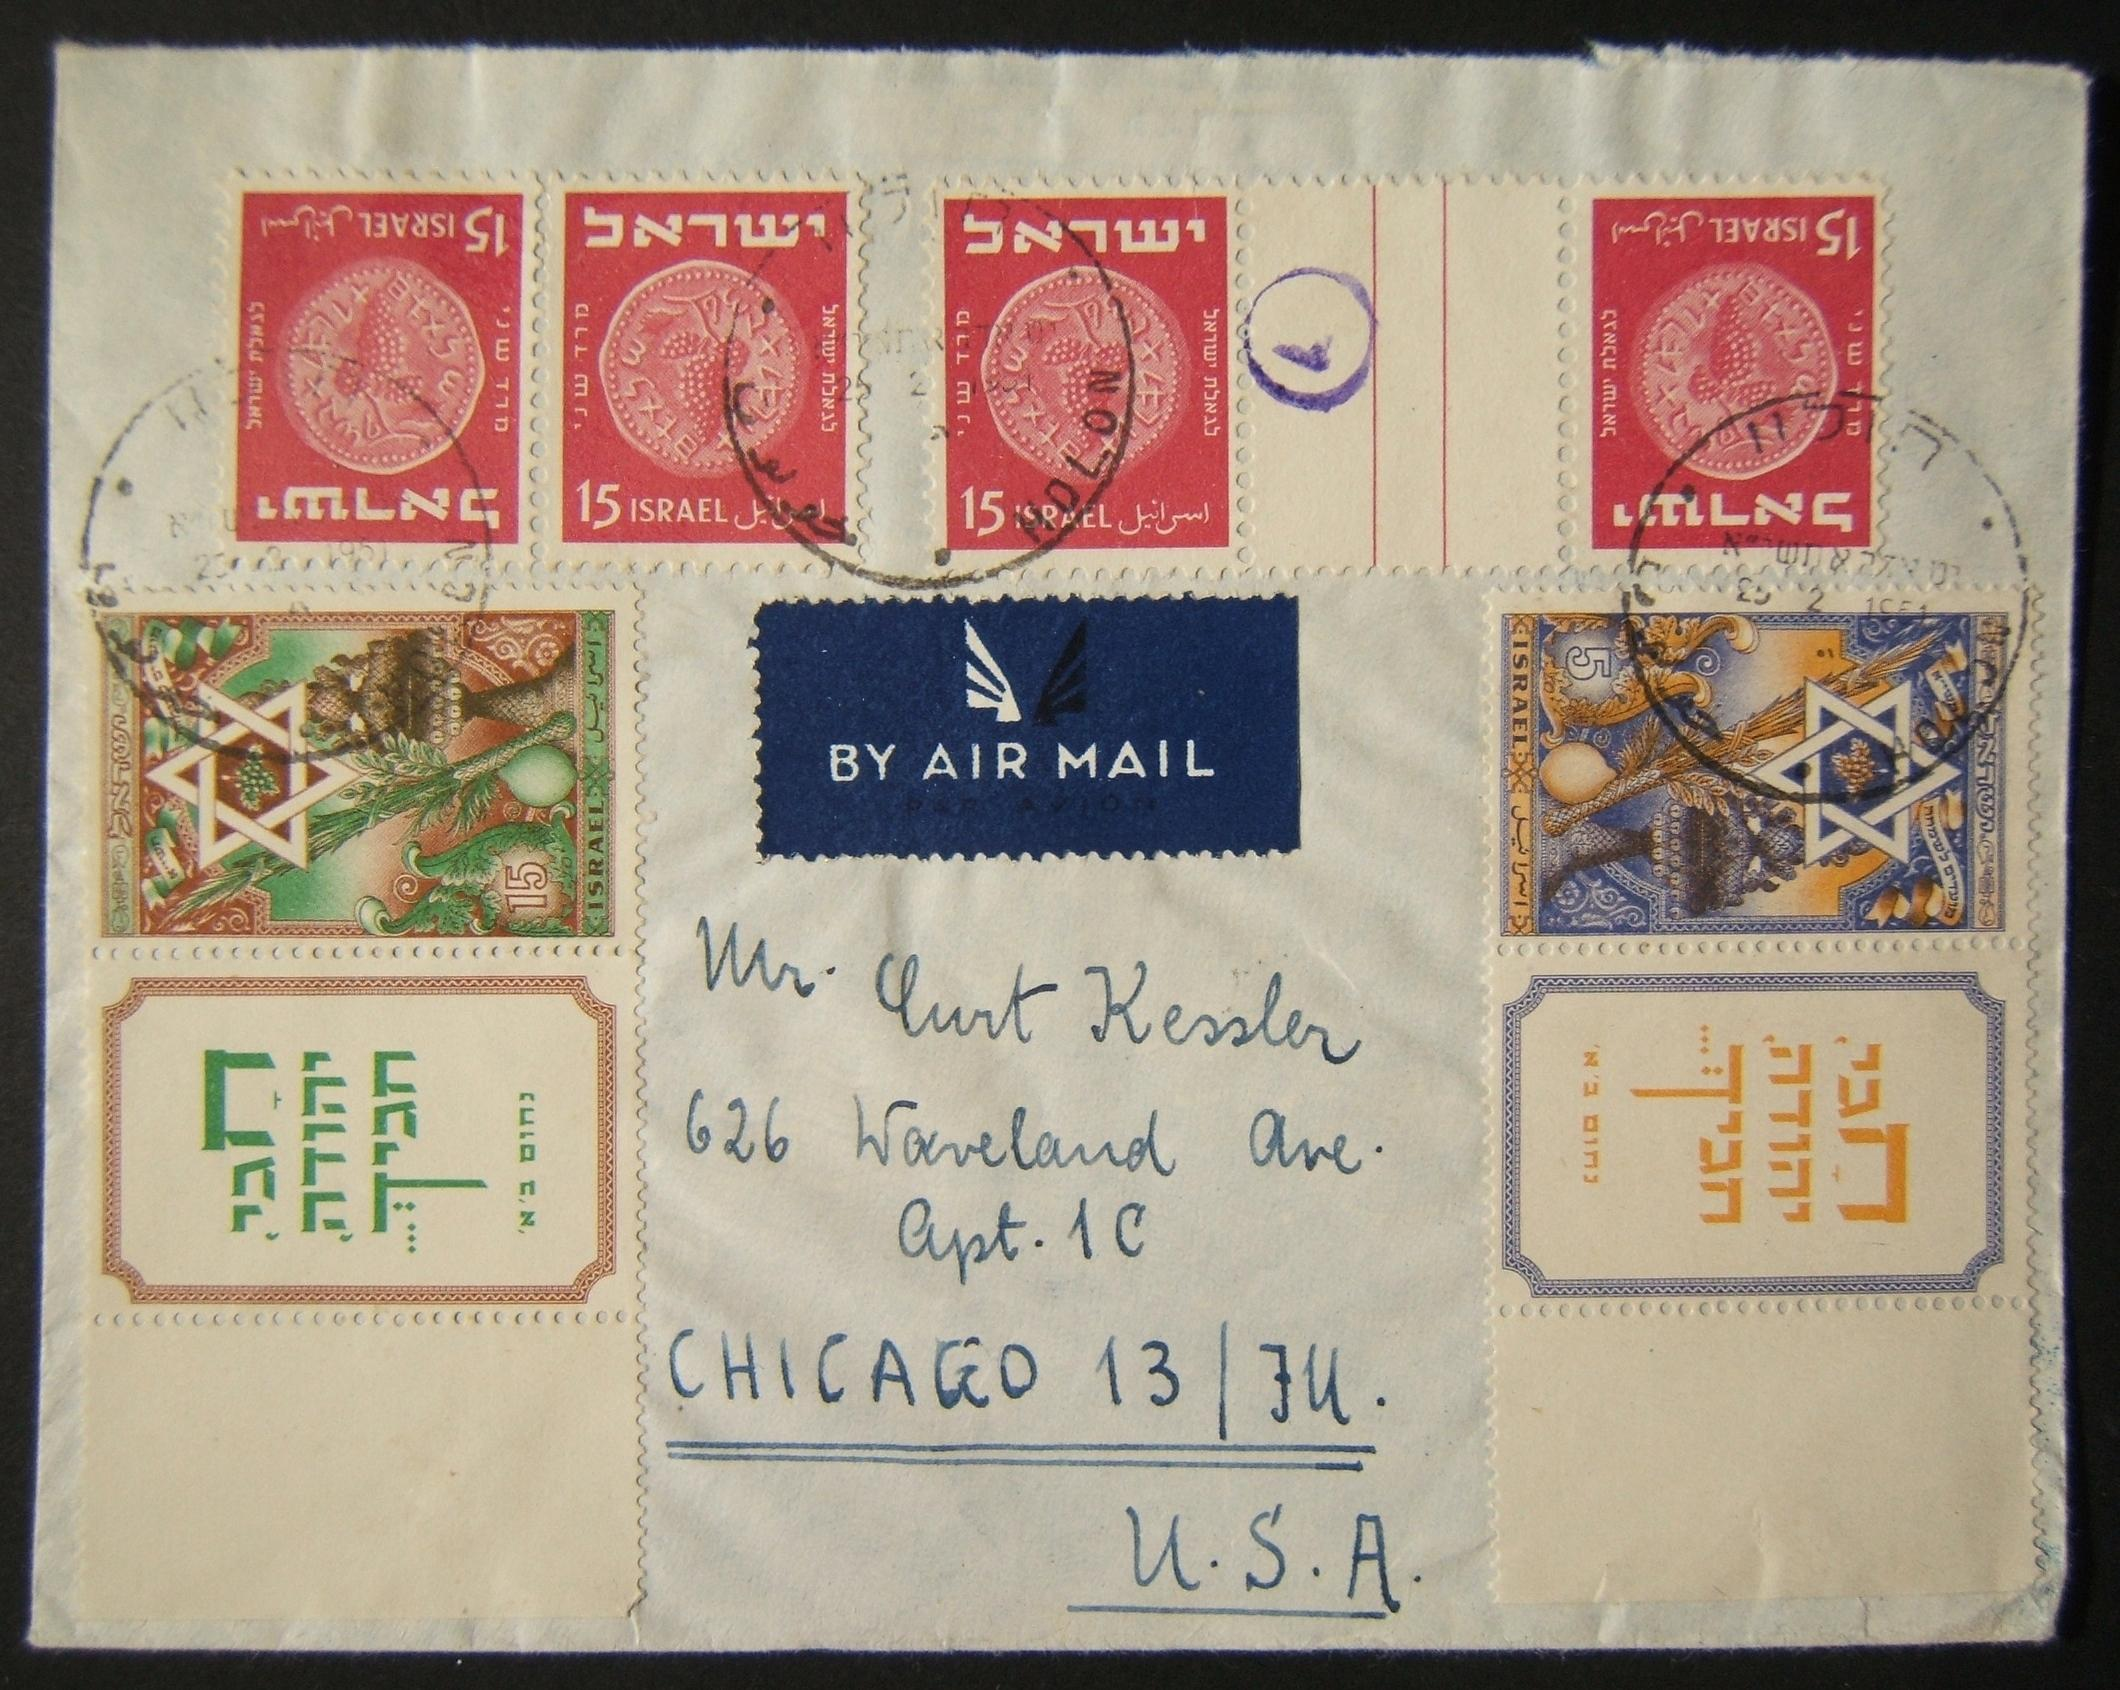 1951 airmail to US; 2nd Coinage tete-beche & gutter pairs + full-tabbed stamps